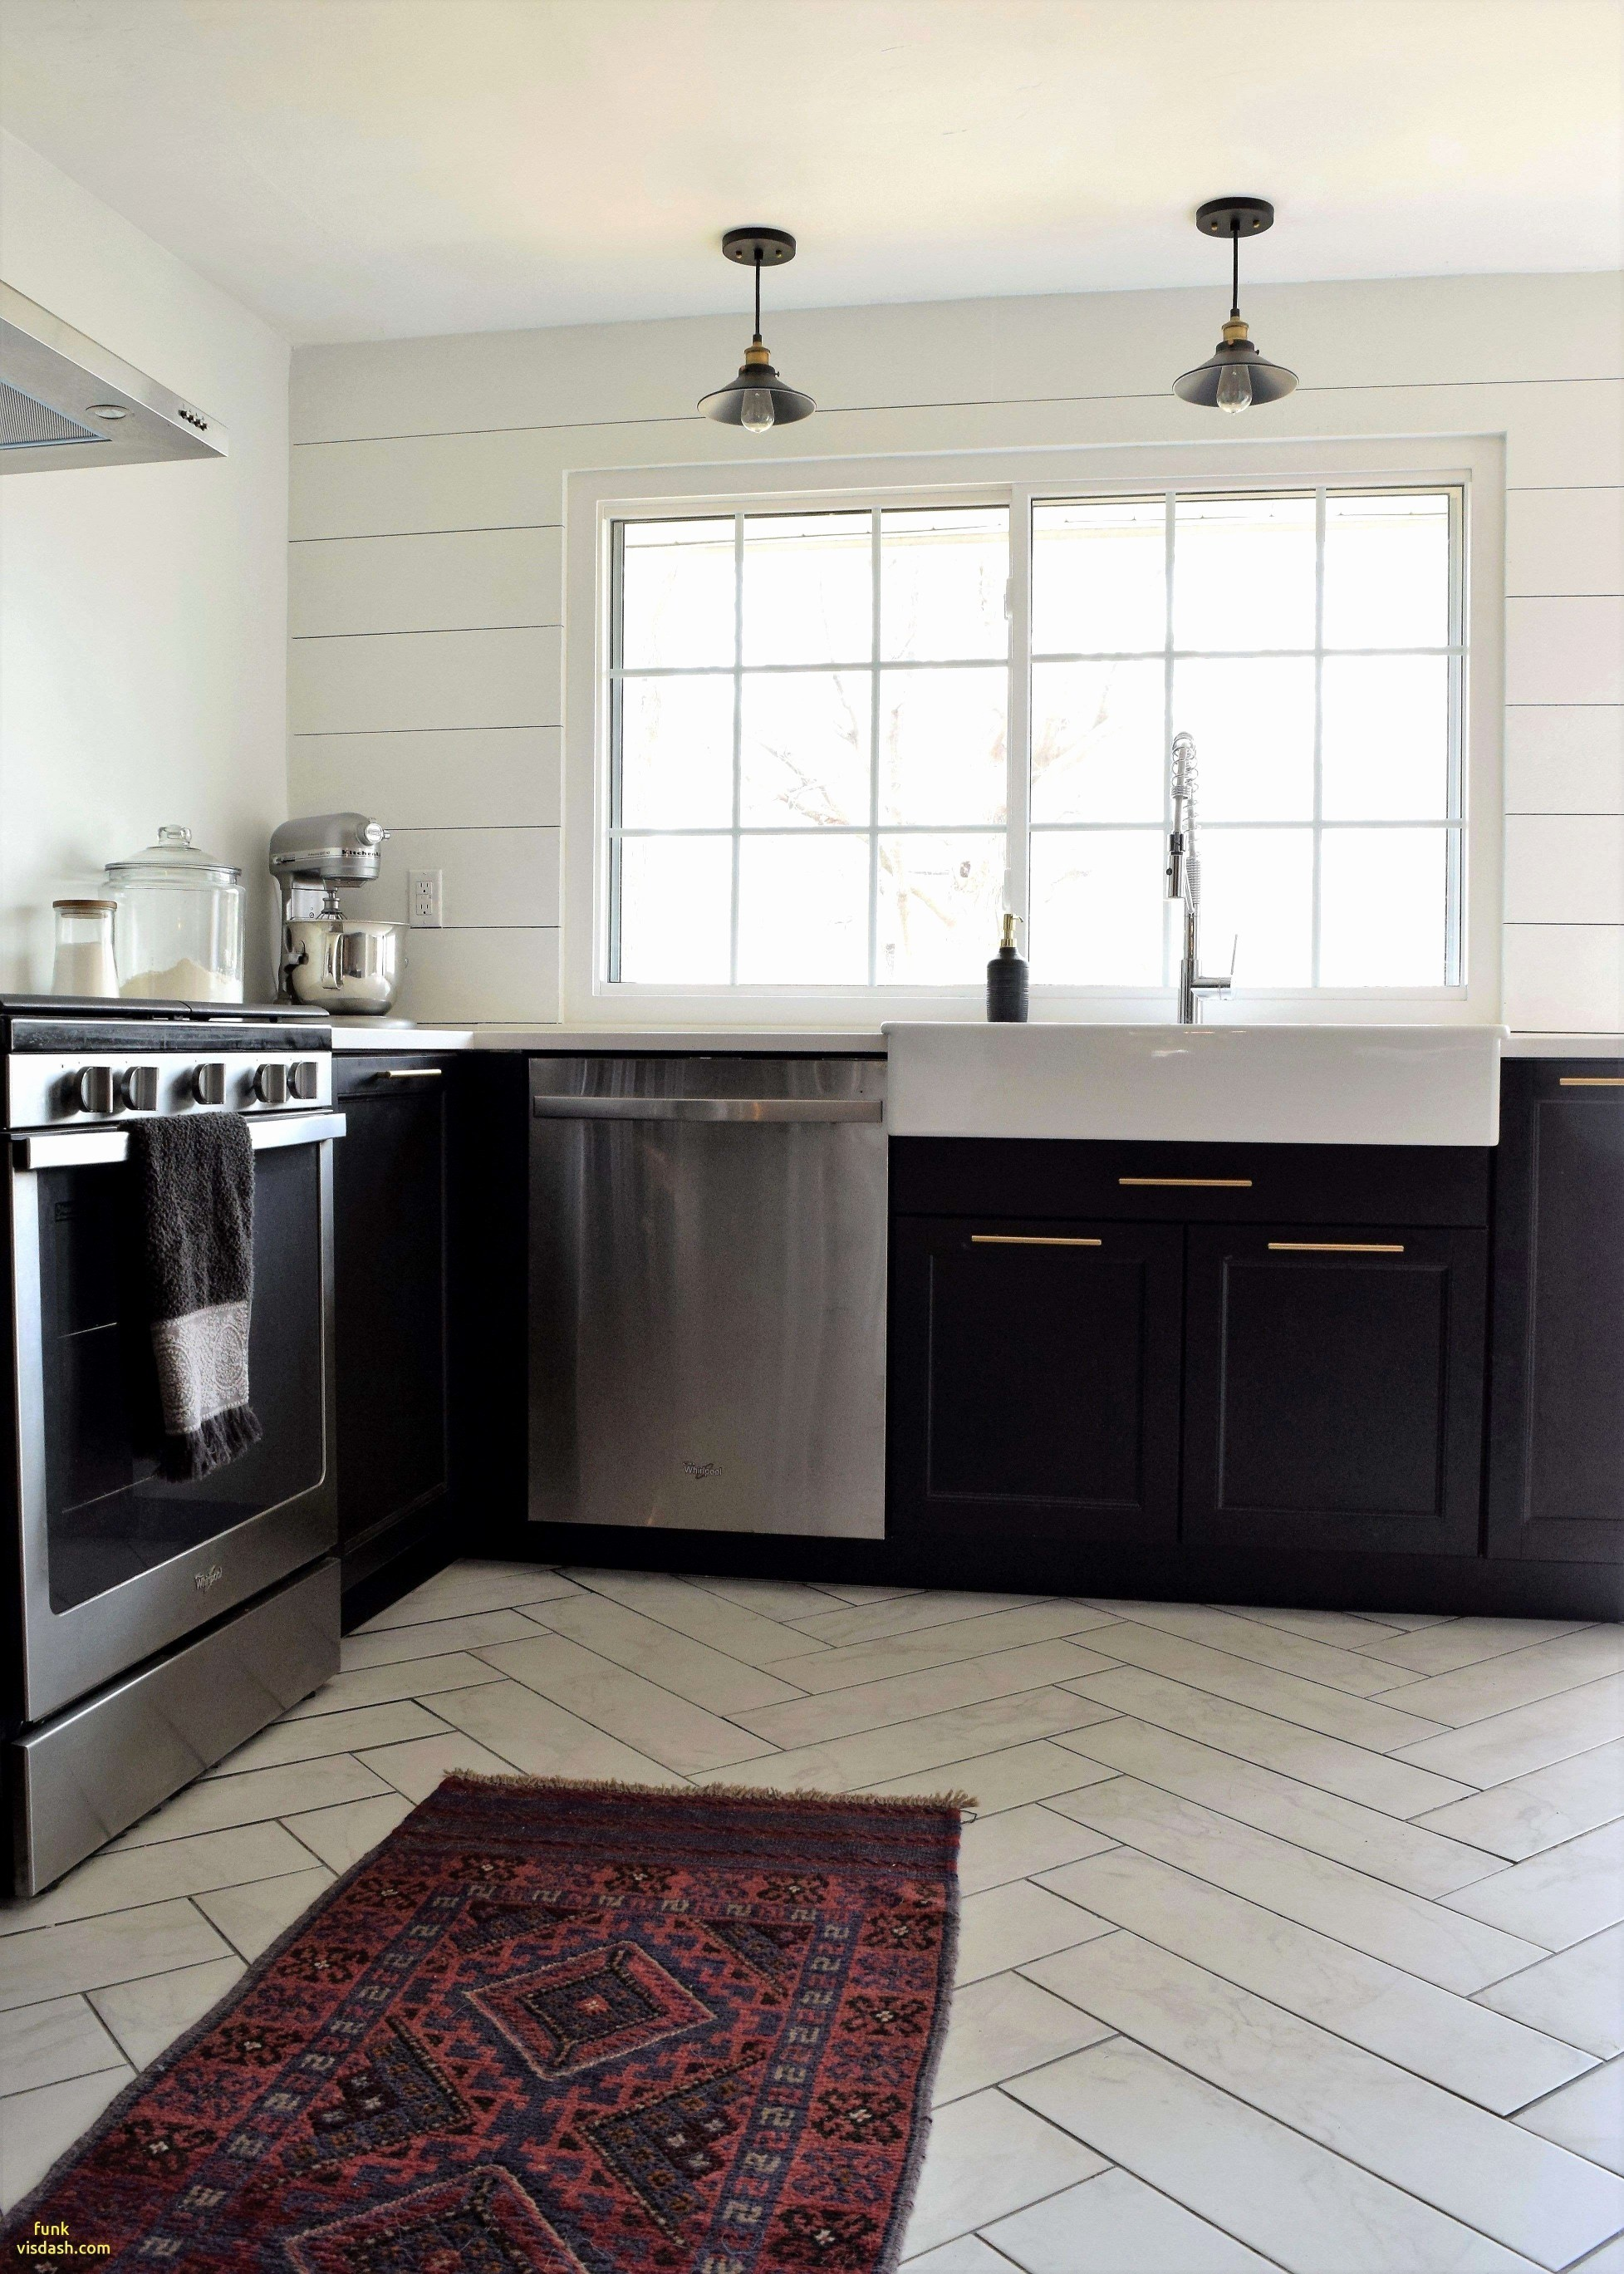 Extraordinary How to Layout A mercial Kitchen from missary kitchen denver image source abovekitchencabinetdecor